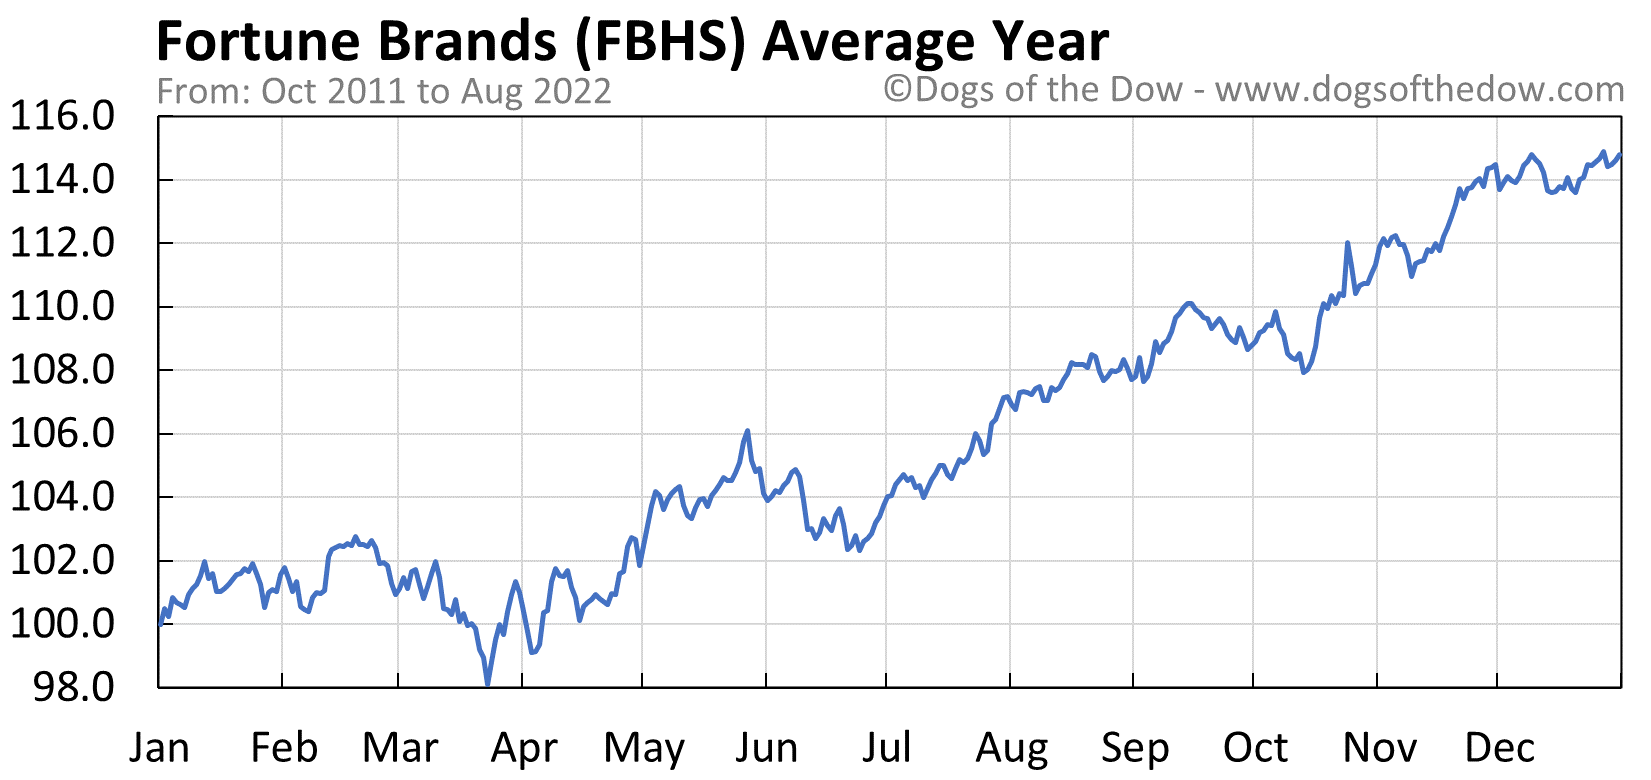 FBHS average year chart